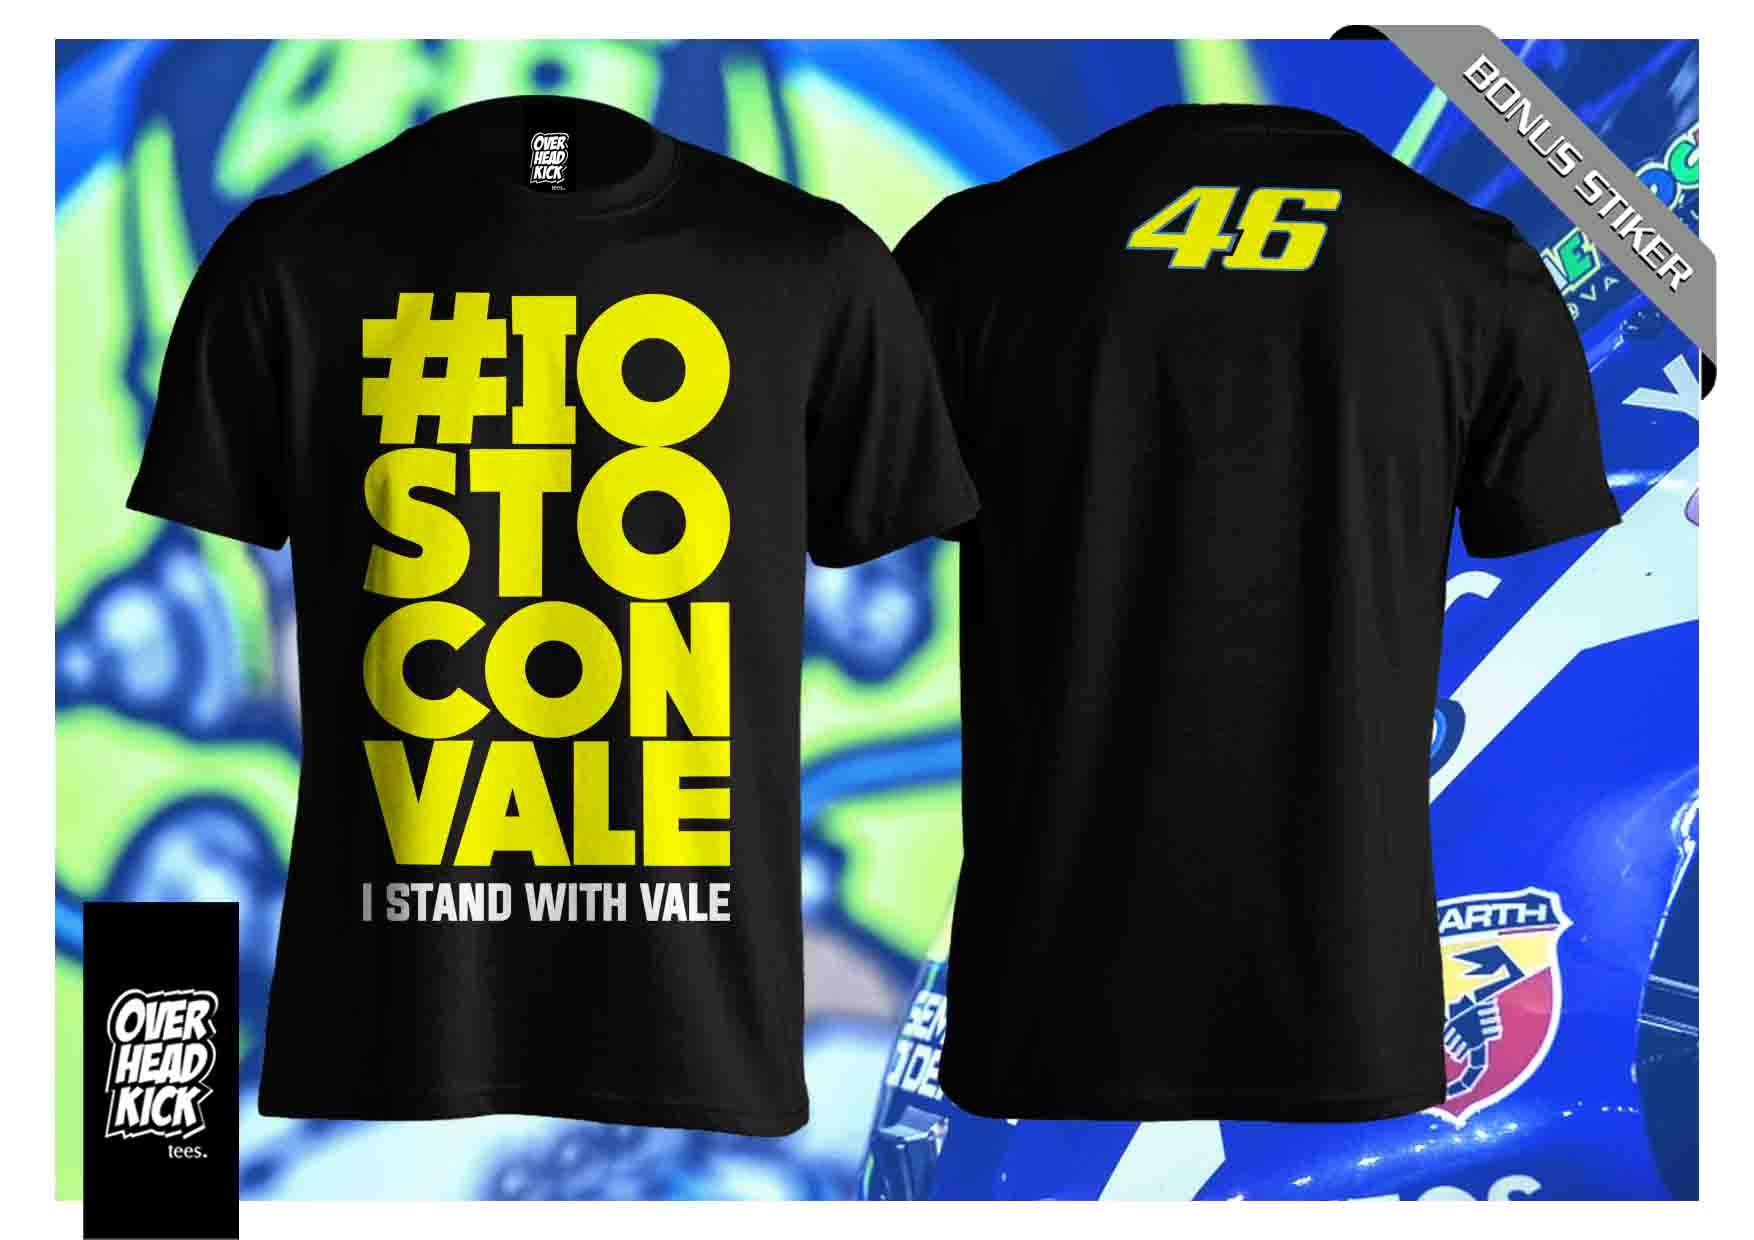 Best Seller Kaos Valentino Rossi Hitam Vale 46 The Doctor Vr46 Valen T Shirt Distro Racer Tino Motogp Race Page